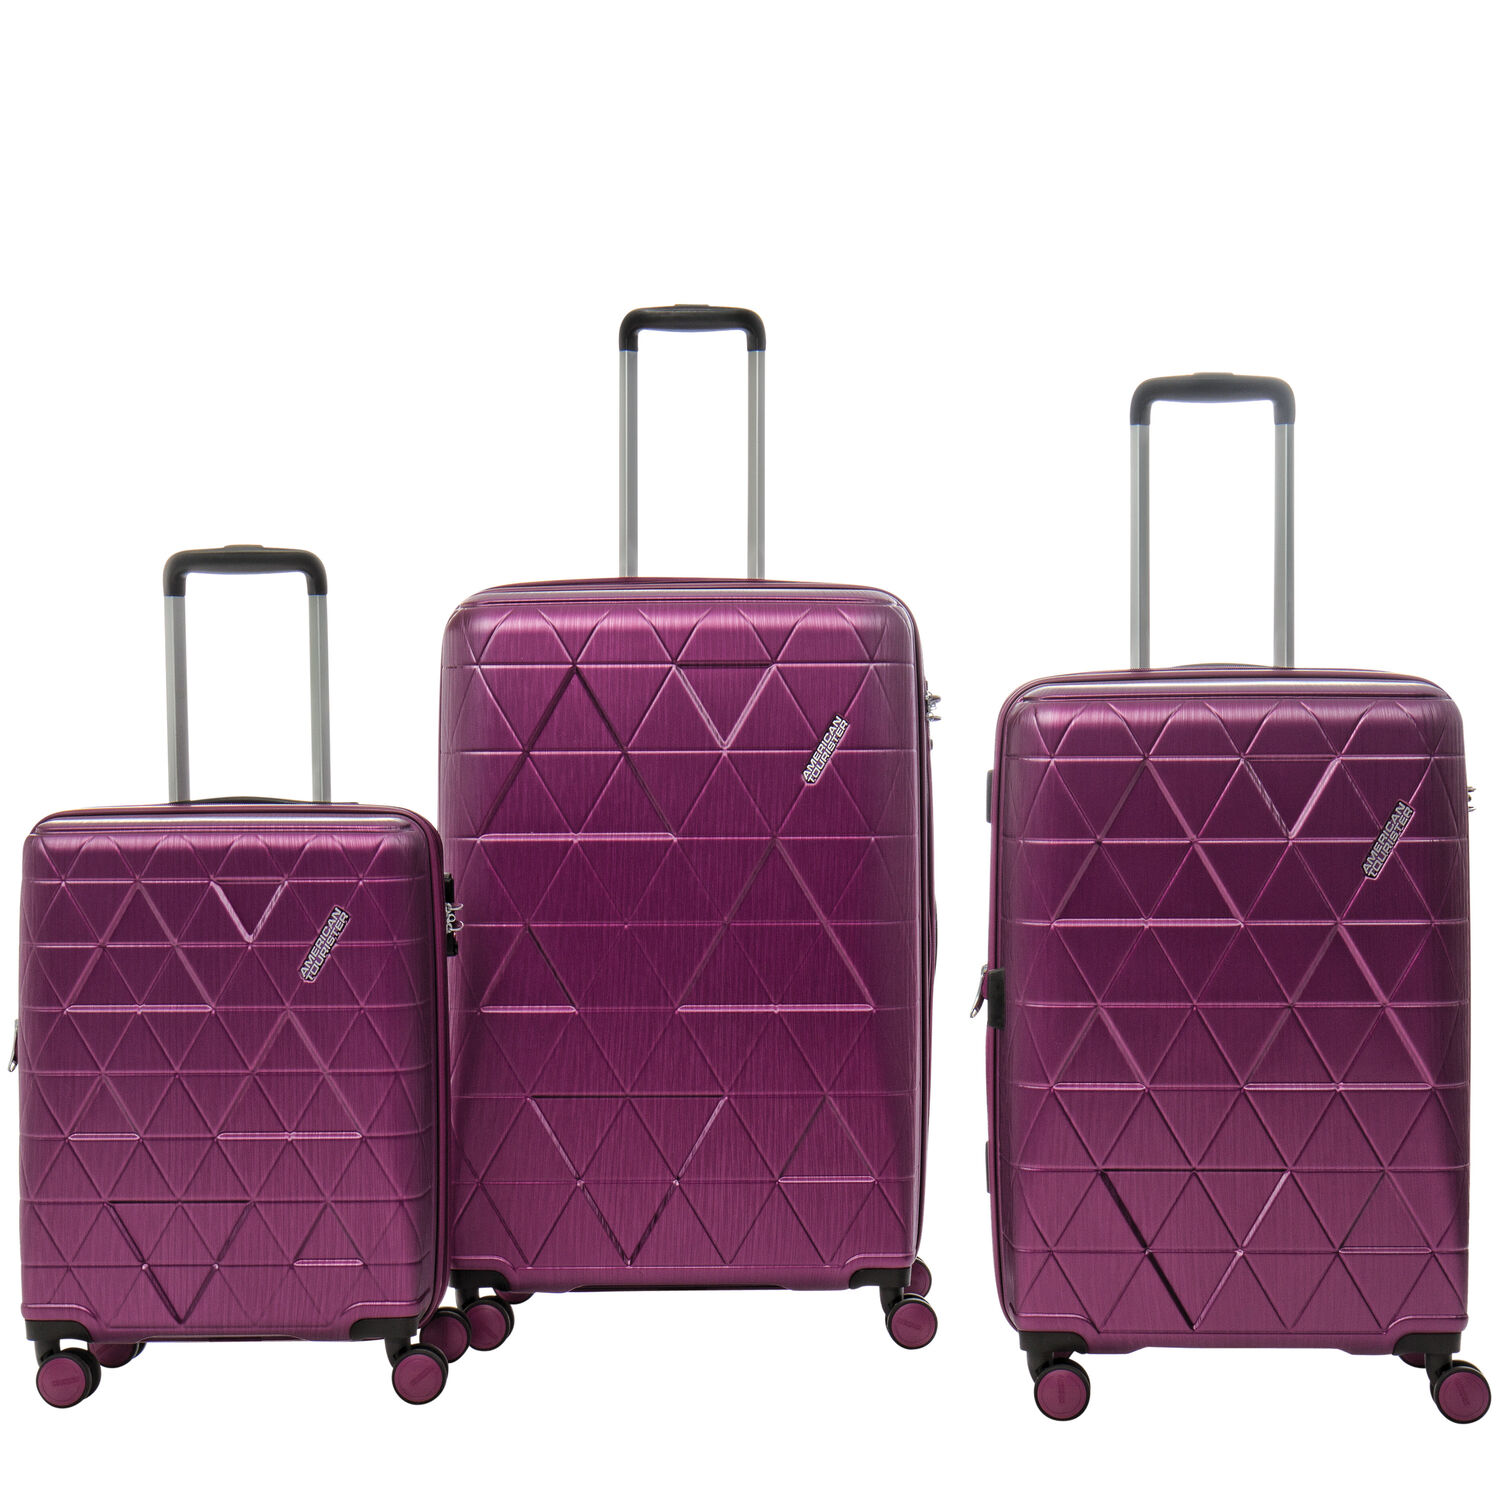 American Tourister Edge Spinner 3 Piece Set (CO/Med/Lrg) in the color Metallic Violet.